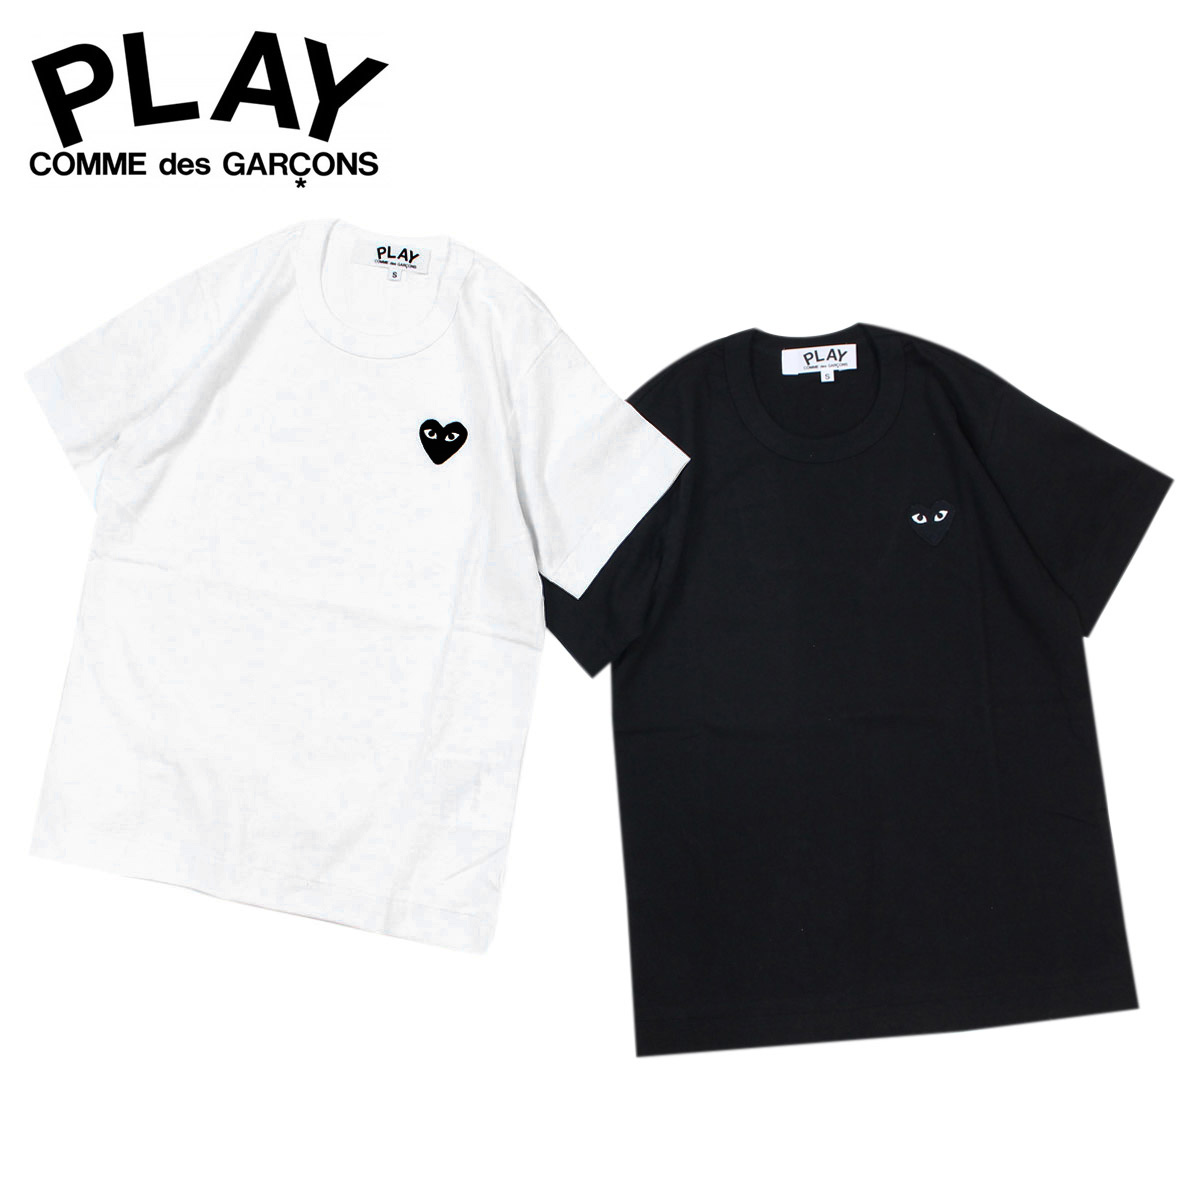 Sneak Online Shop Play T Shirt Short Sleeves Comme